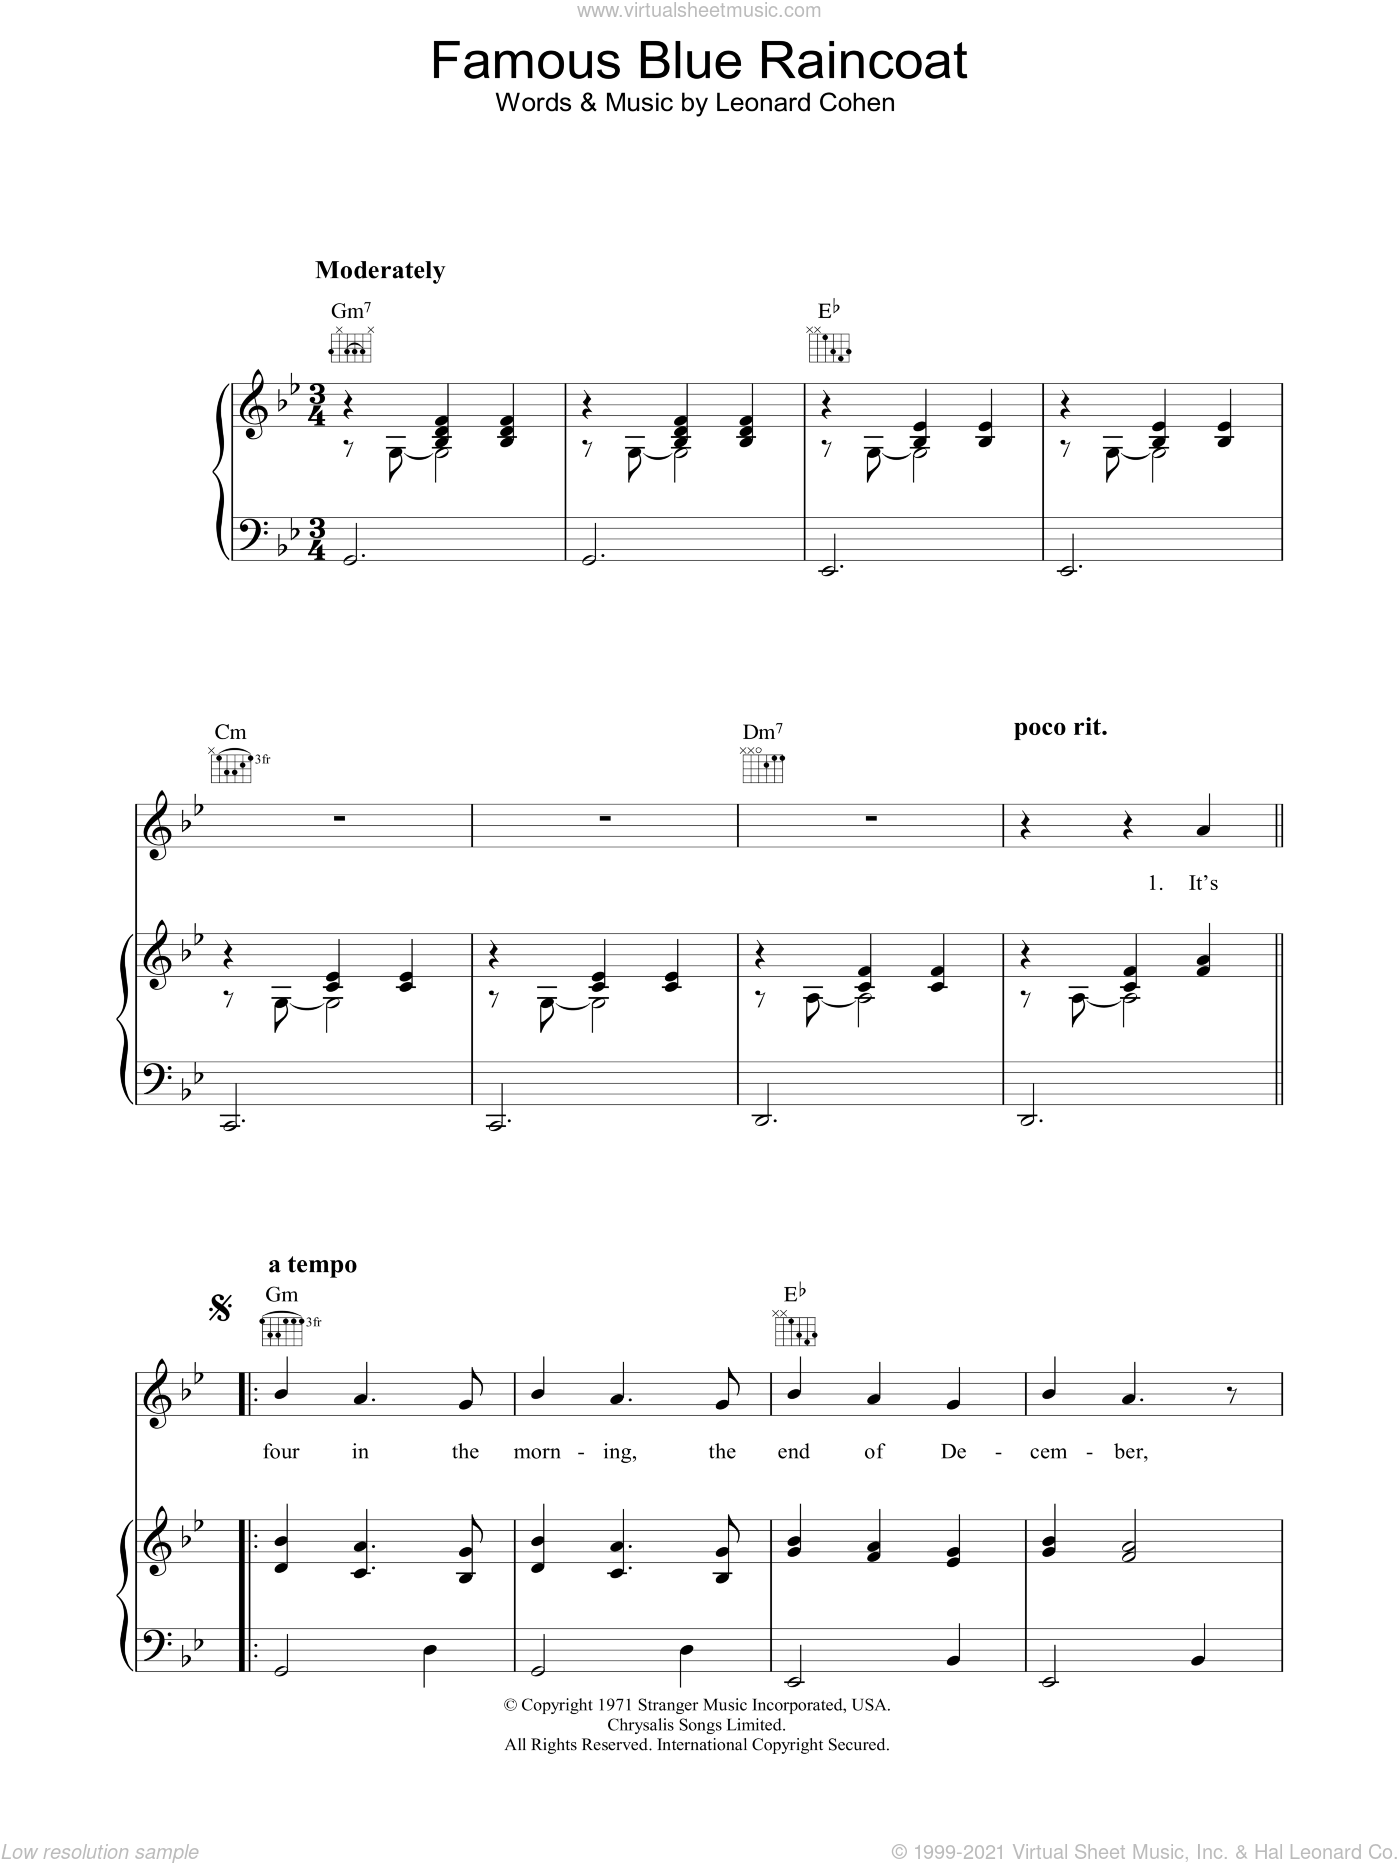 Famous Blue Raincoat sheet music for voice, piano or guitar by Leonard Cohen, intermediate skill level